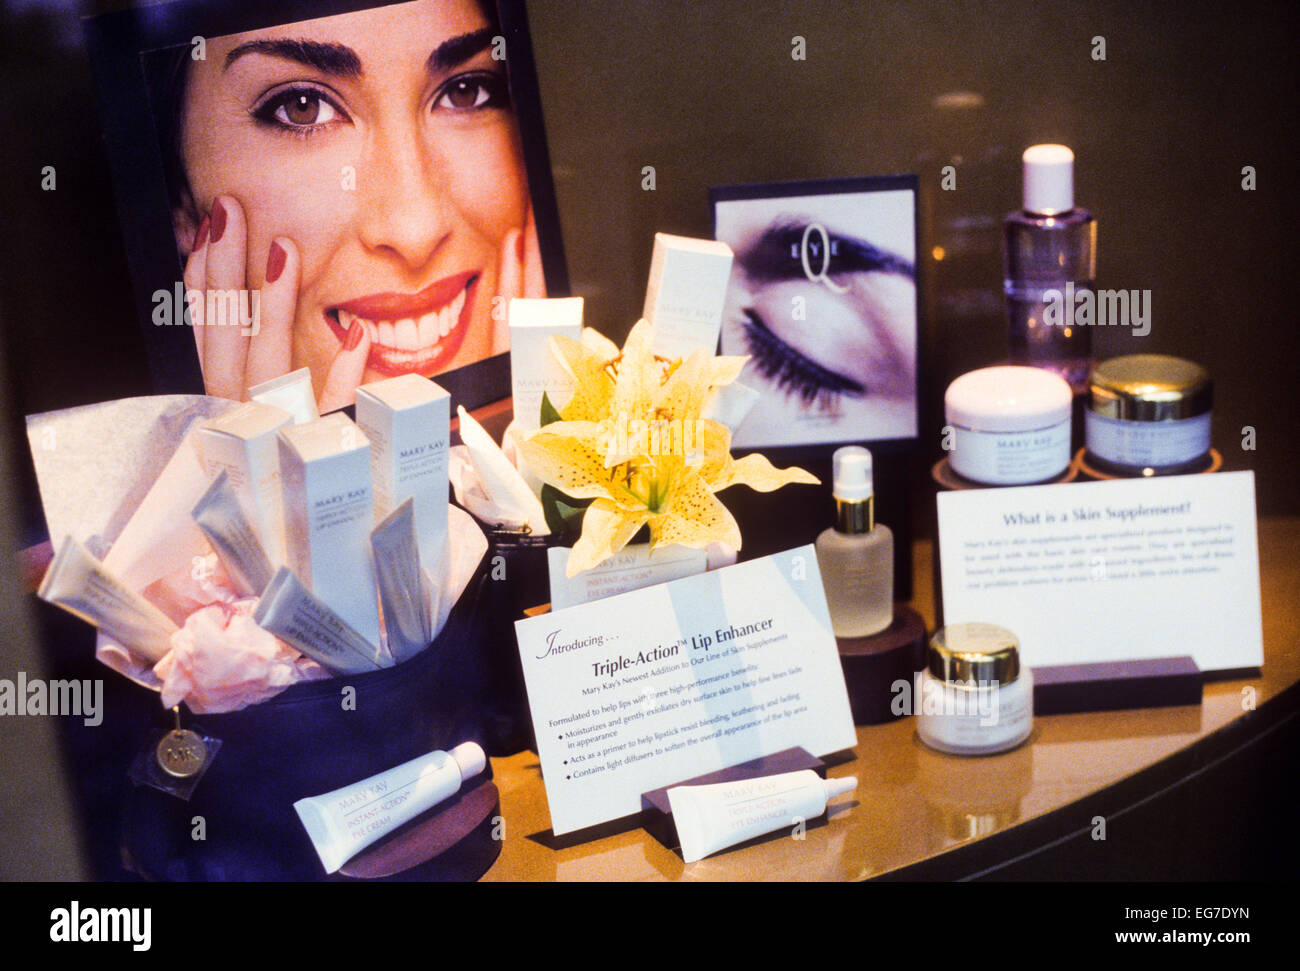 DALLAS, TX – MAY 1: Images depicting Mary Kay cosmetics promotional items and culture in Dallas, Texas on May 1, Stock Photo